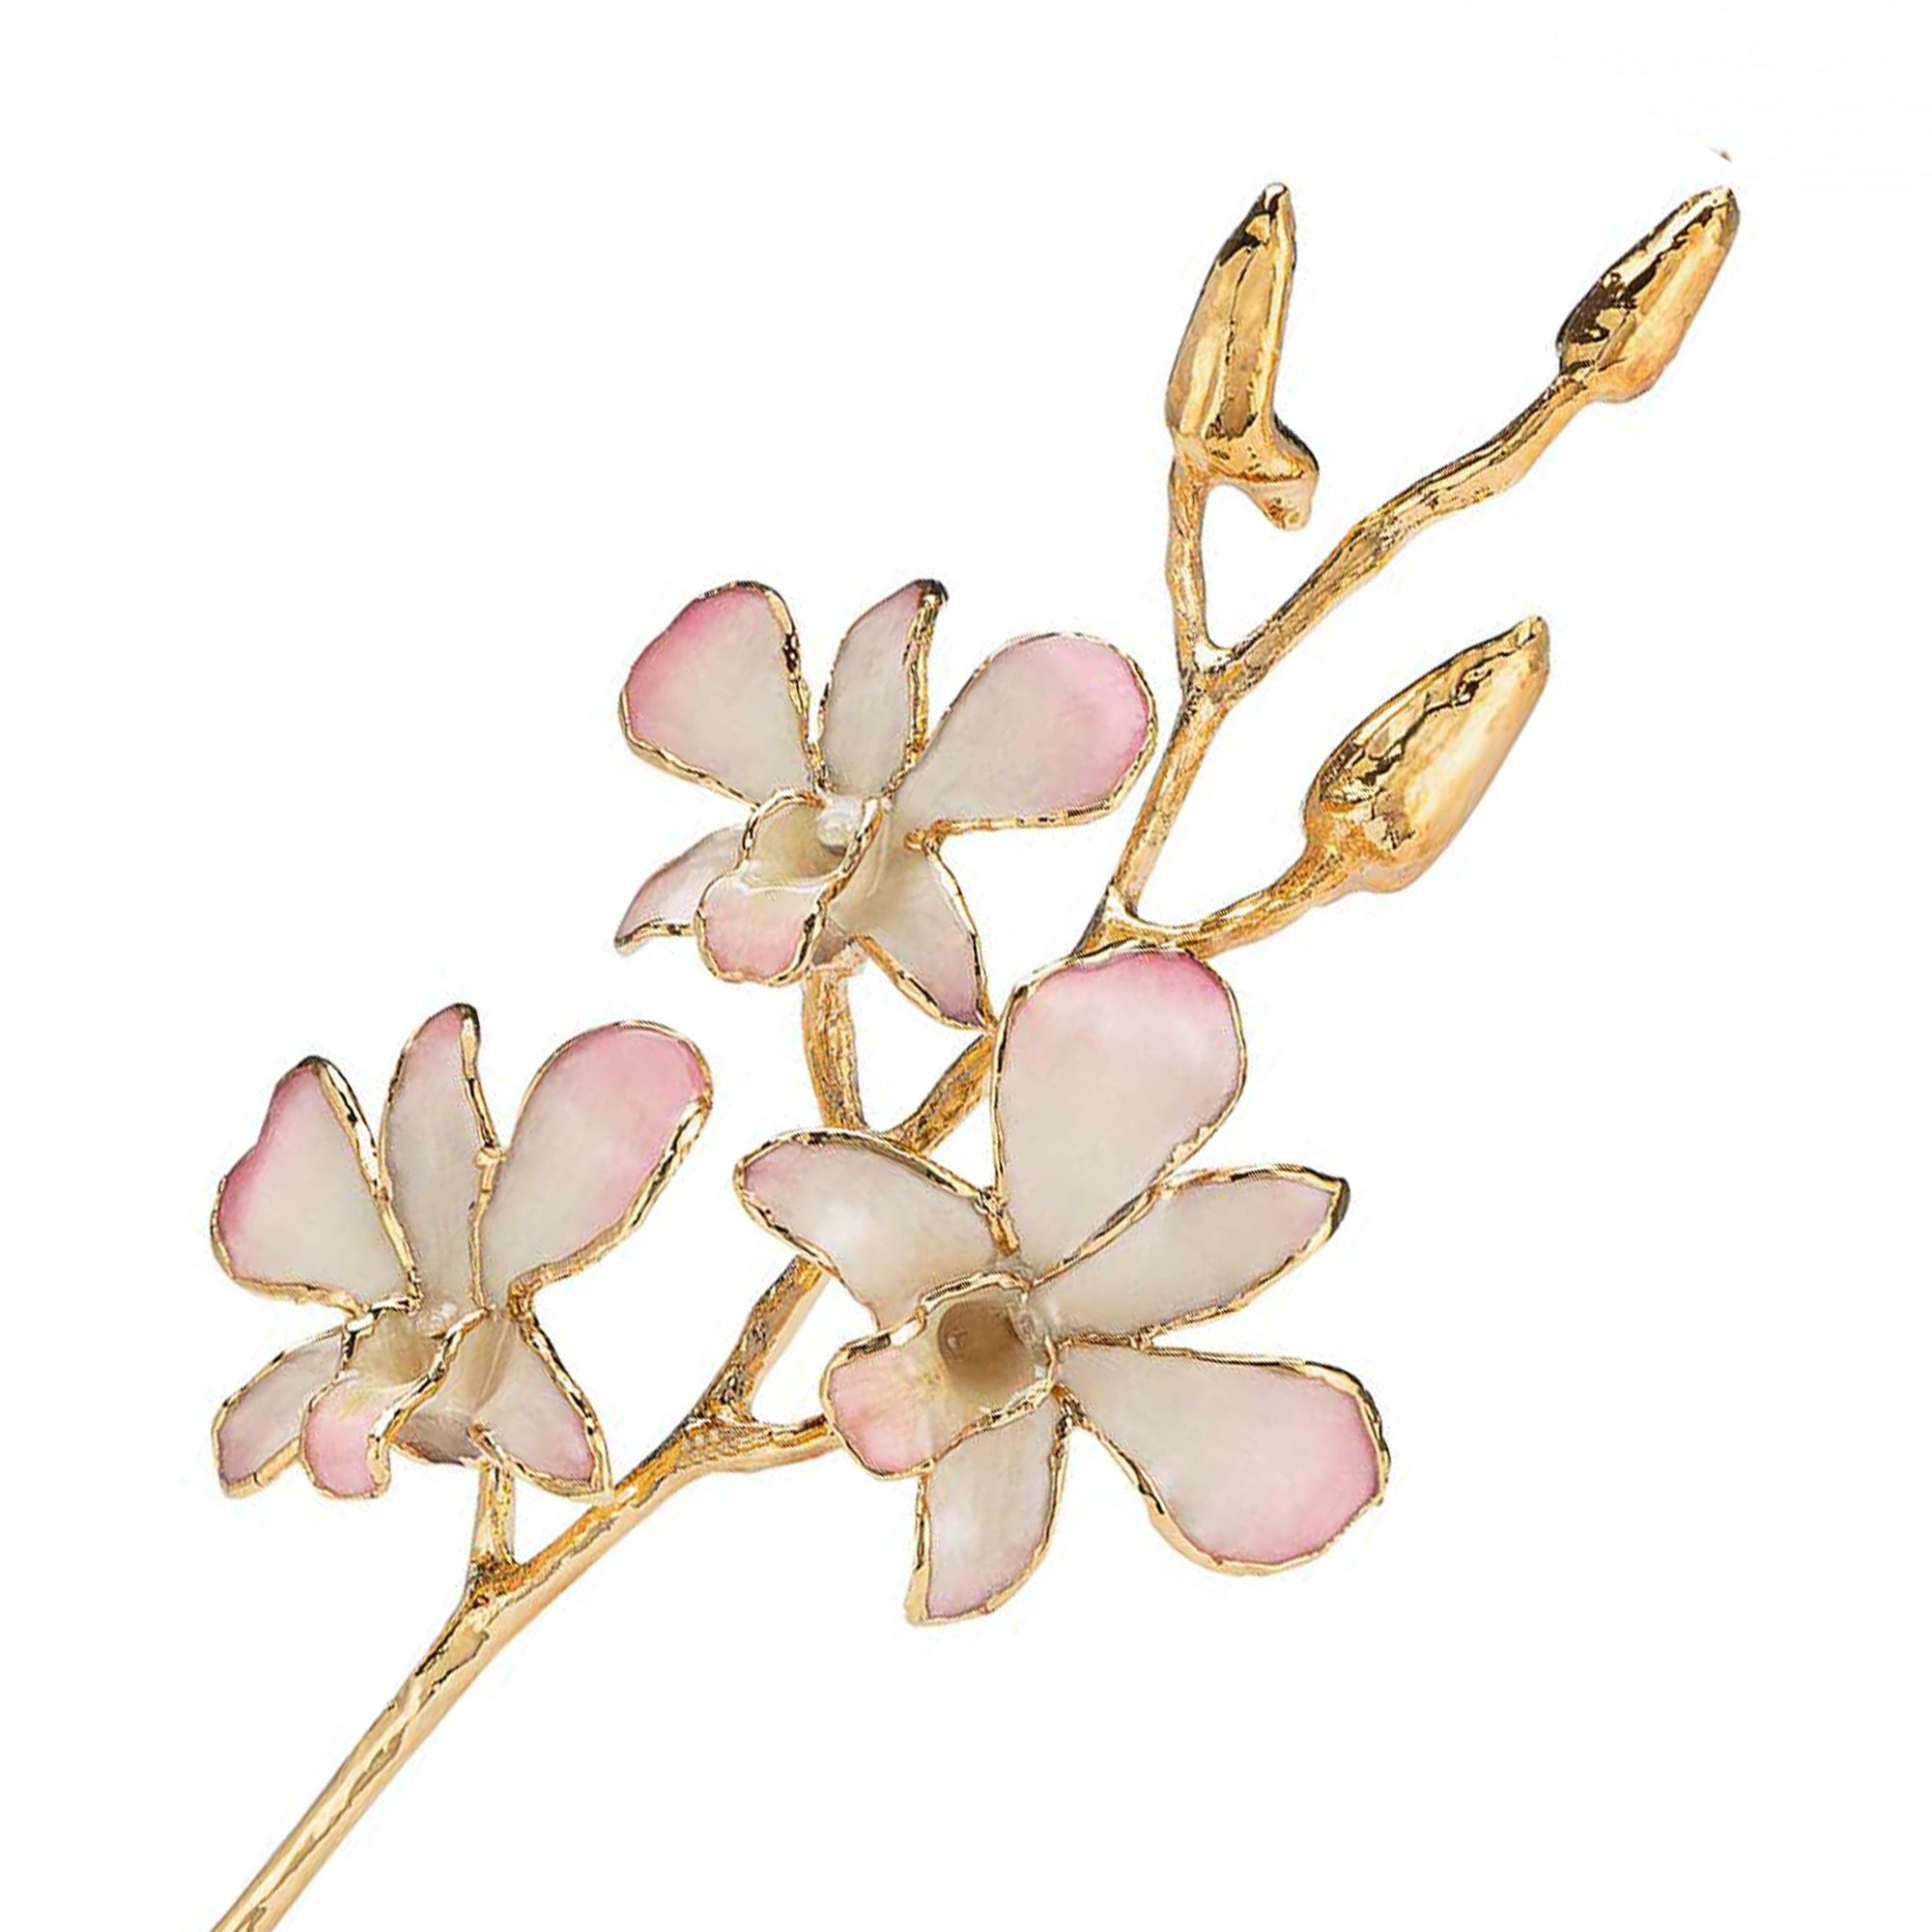 24K Gold Dipped Orchid in White to Pink view of gold stem and flowers